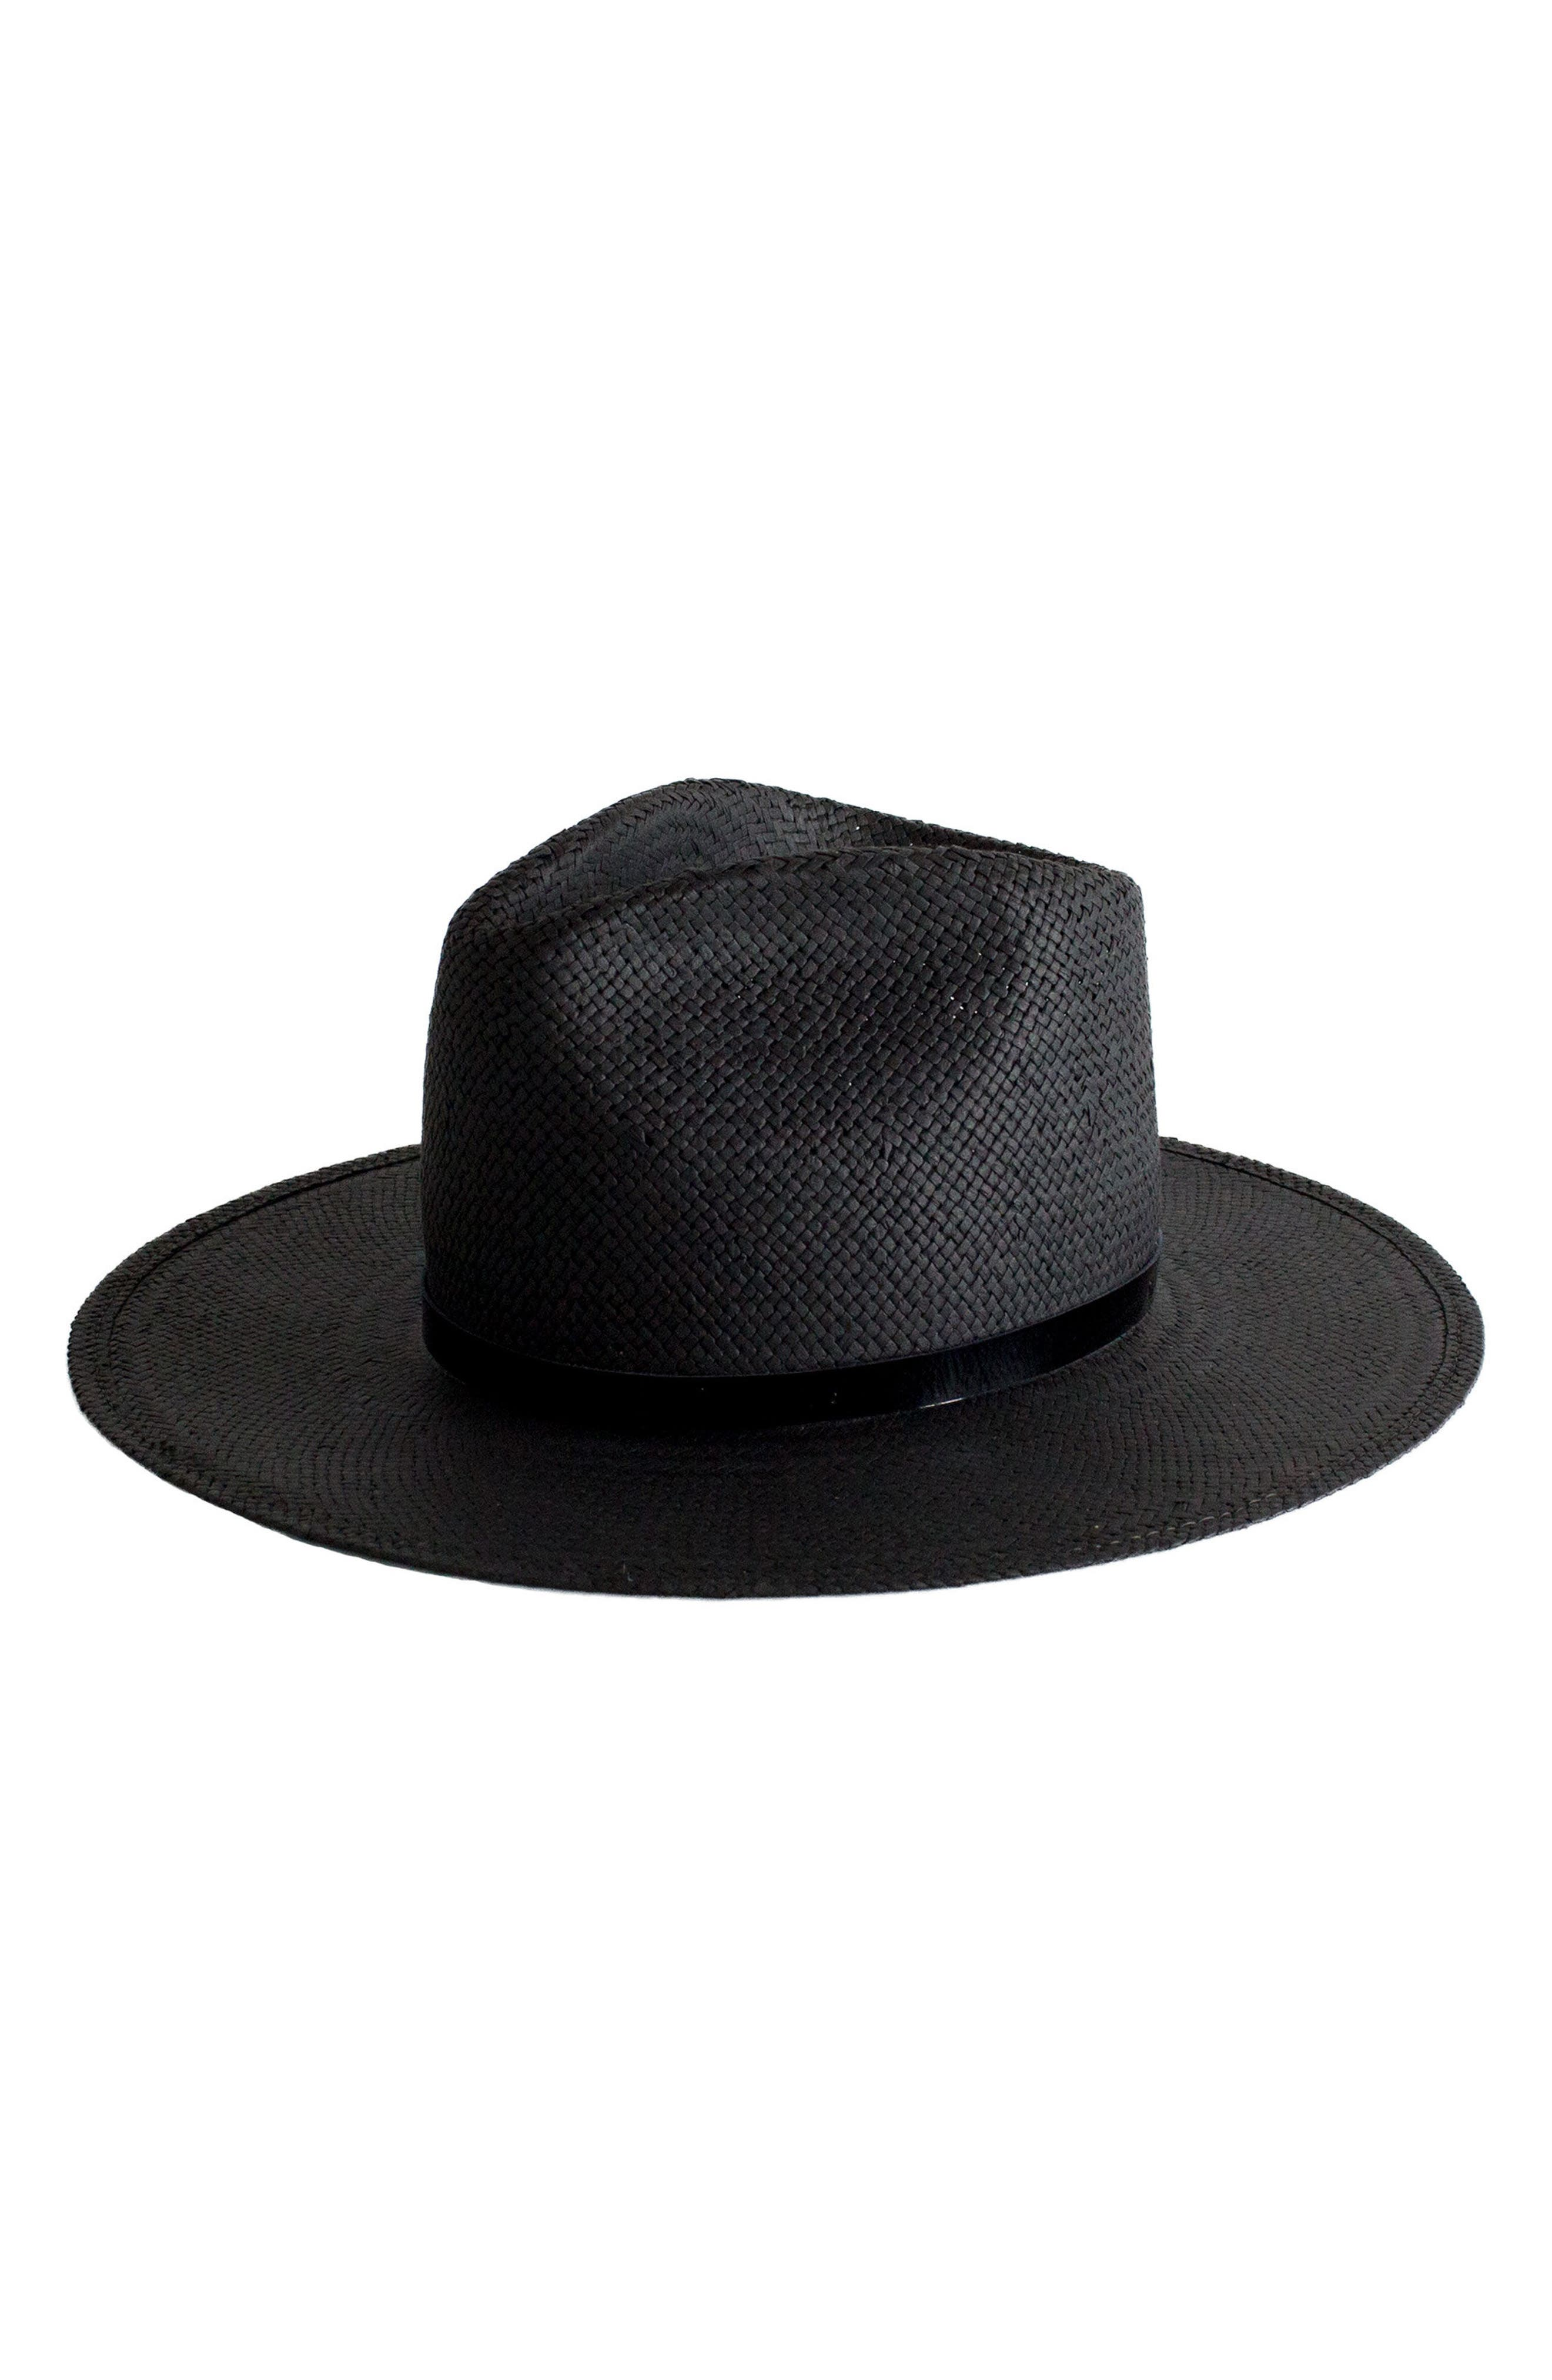 Lex Packable Straw Fedora,                         Main,                         color, 001